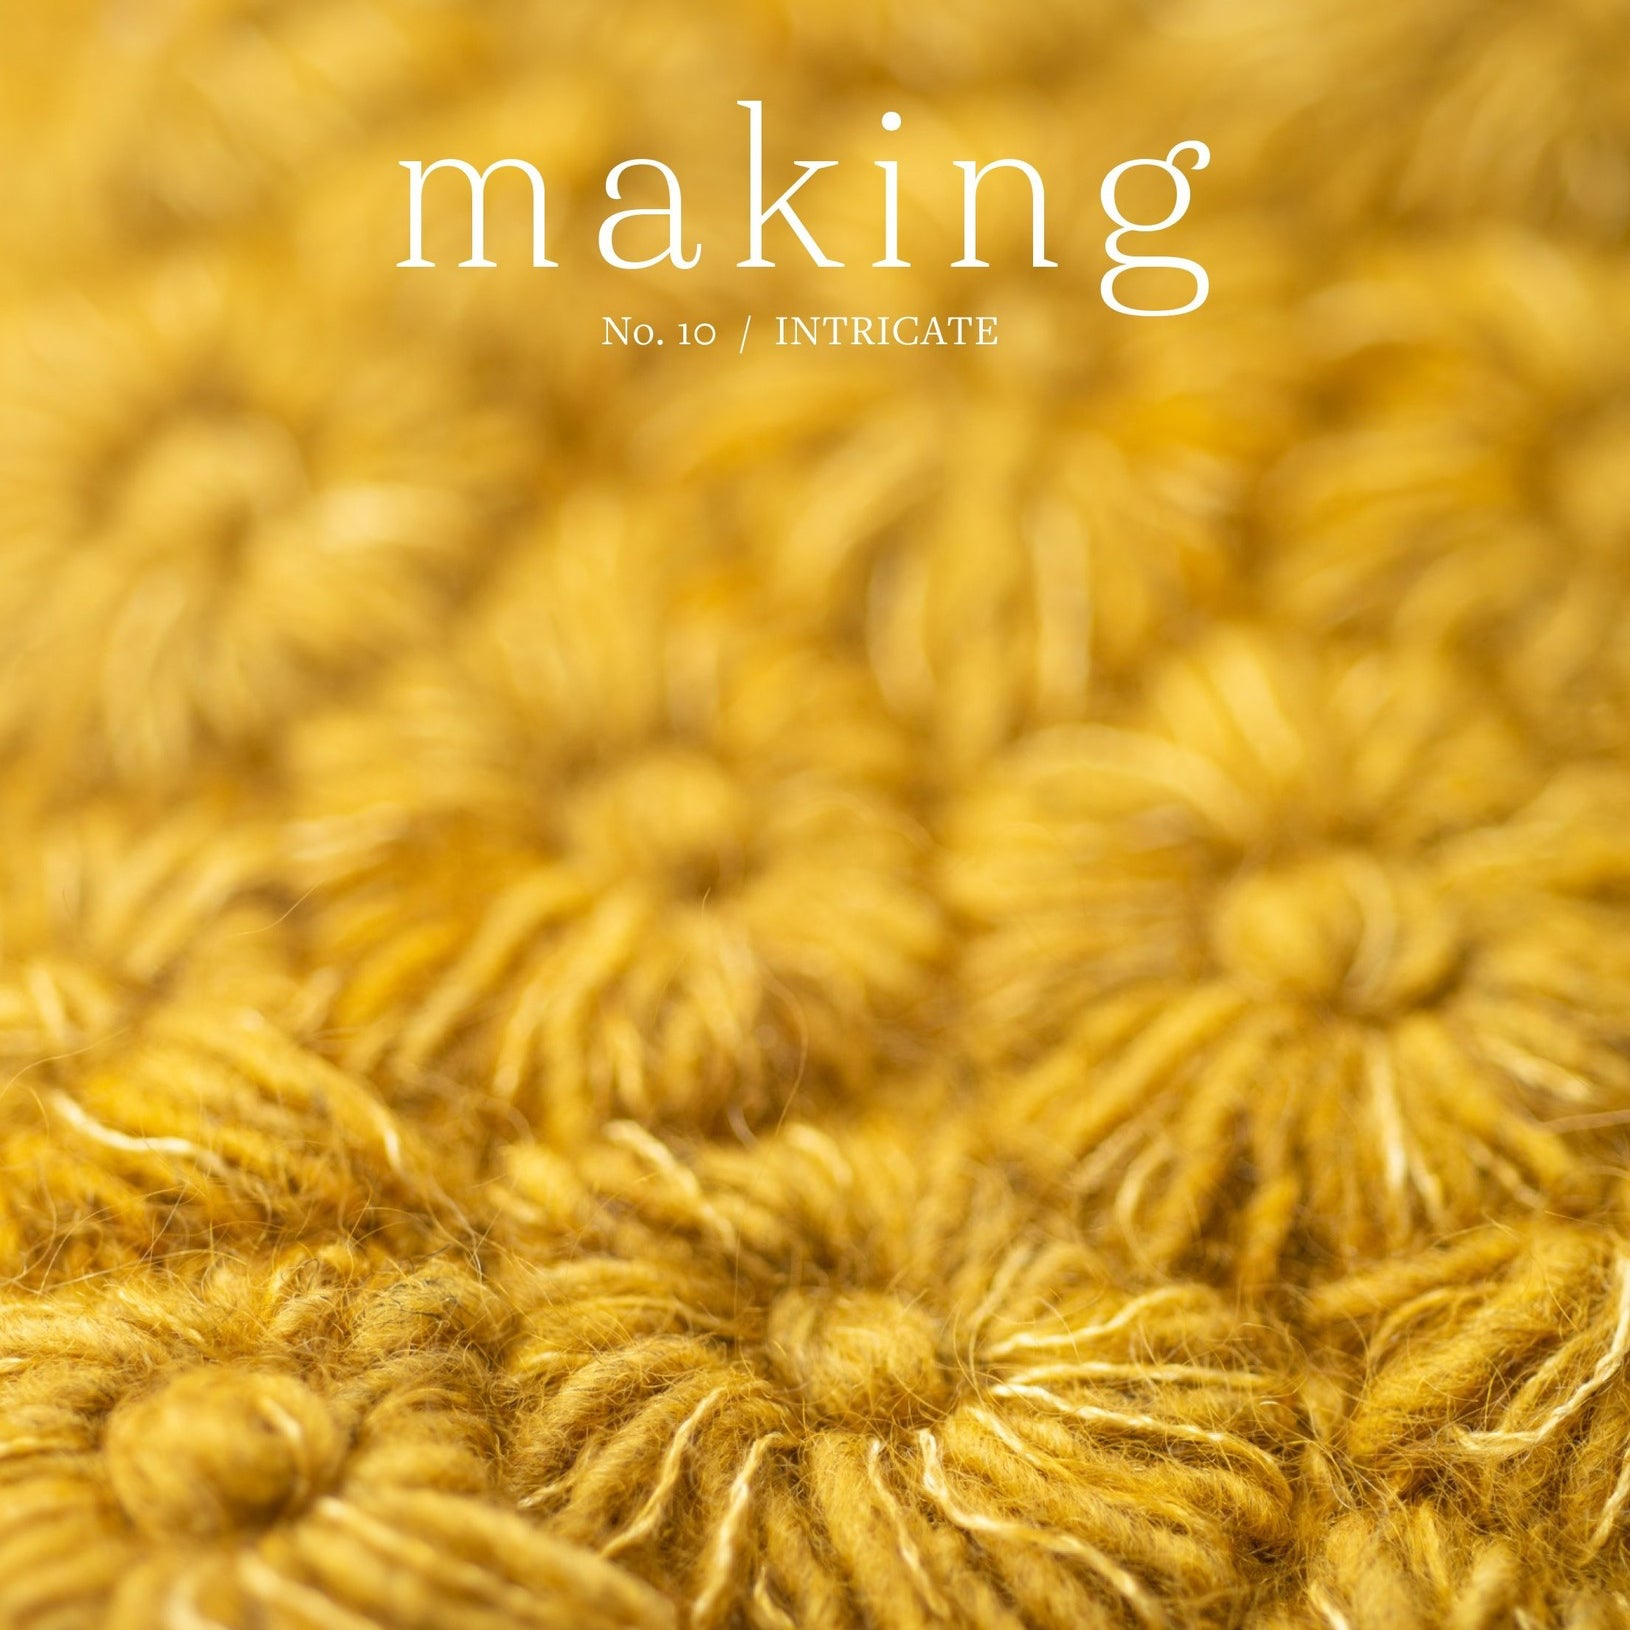 Making No. 10 / Intricate